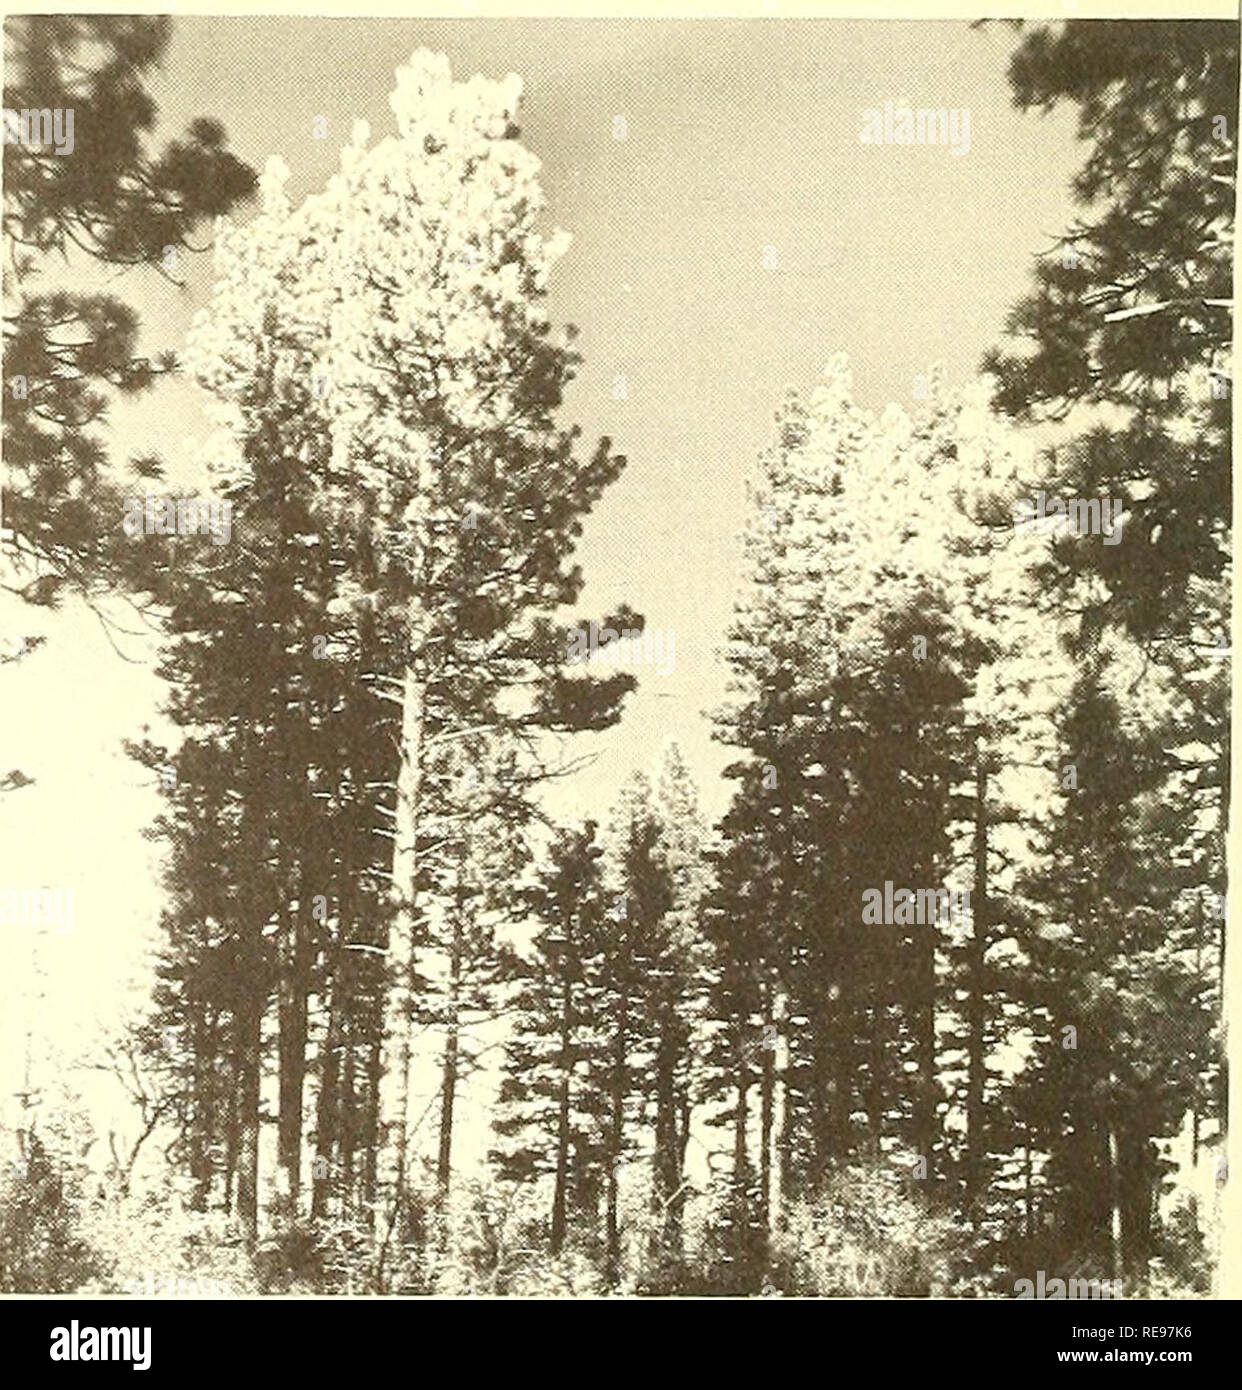 . Cooperative economic insect report. Beneficial insects; Insect pests. - 1010 also occurred on seme 150,000 acres in parts of Shasta and Lassen Counties. In southern California, many Coulter pines were killed at several locations; in River- side County, groups of 90 or more trees were killed late in the season. In some places outbreaks were sparked by forest fires where beetle broods de- veloped in scorched trees; in others they developed in trees struck by lightning. Warm, dry weather during winter and early spring favored bettle broods in all areas. Mountain Pine Beetle Infestations Most Ab - Stock Image